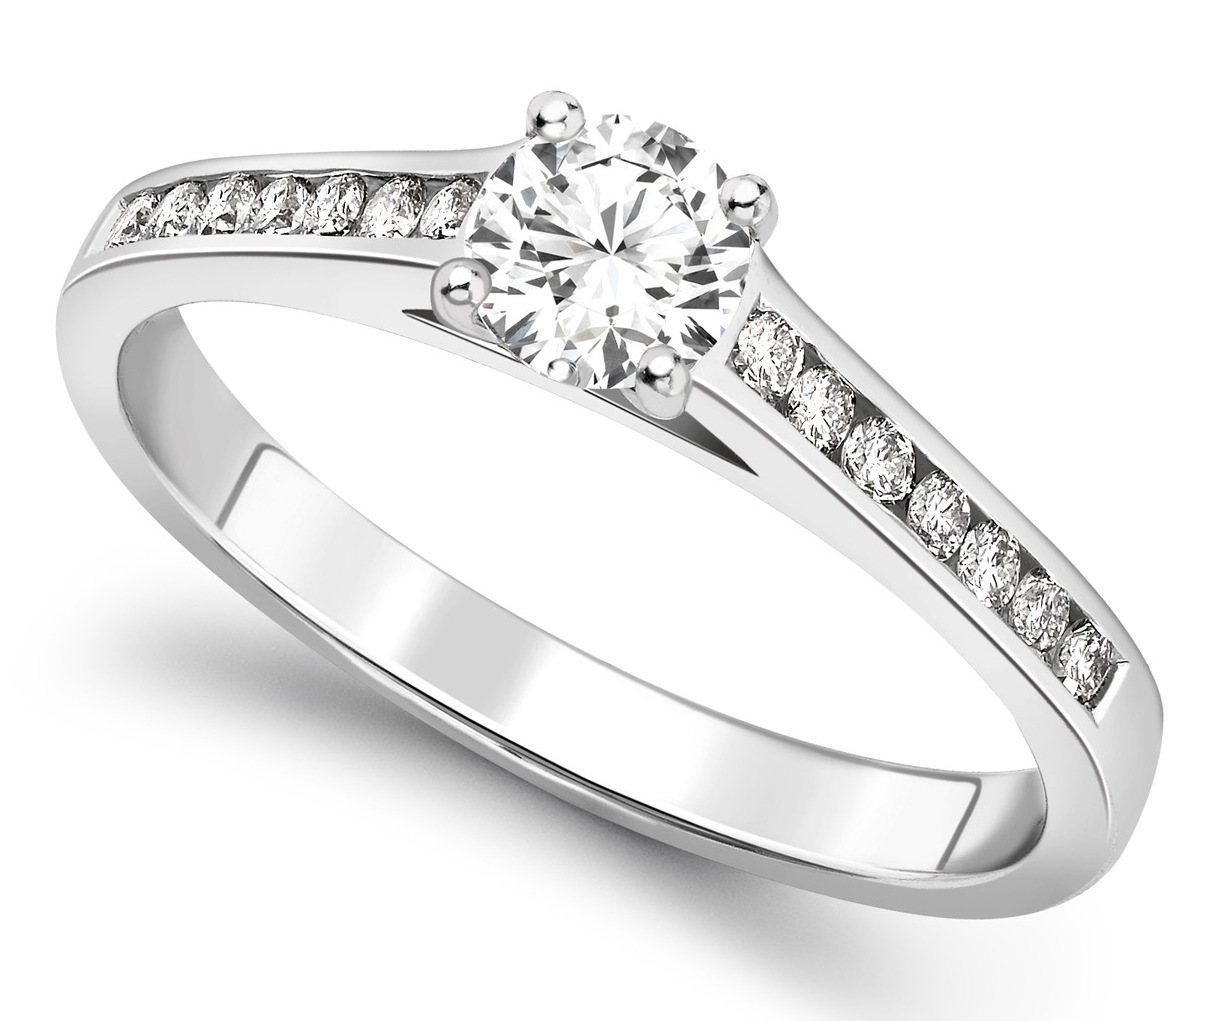 Round Four Claw White Gold Channel Set Engagement Ring CRC739 Main Image